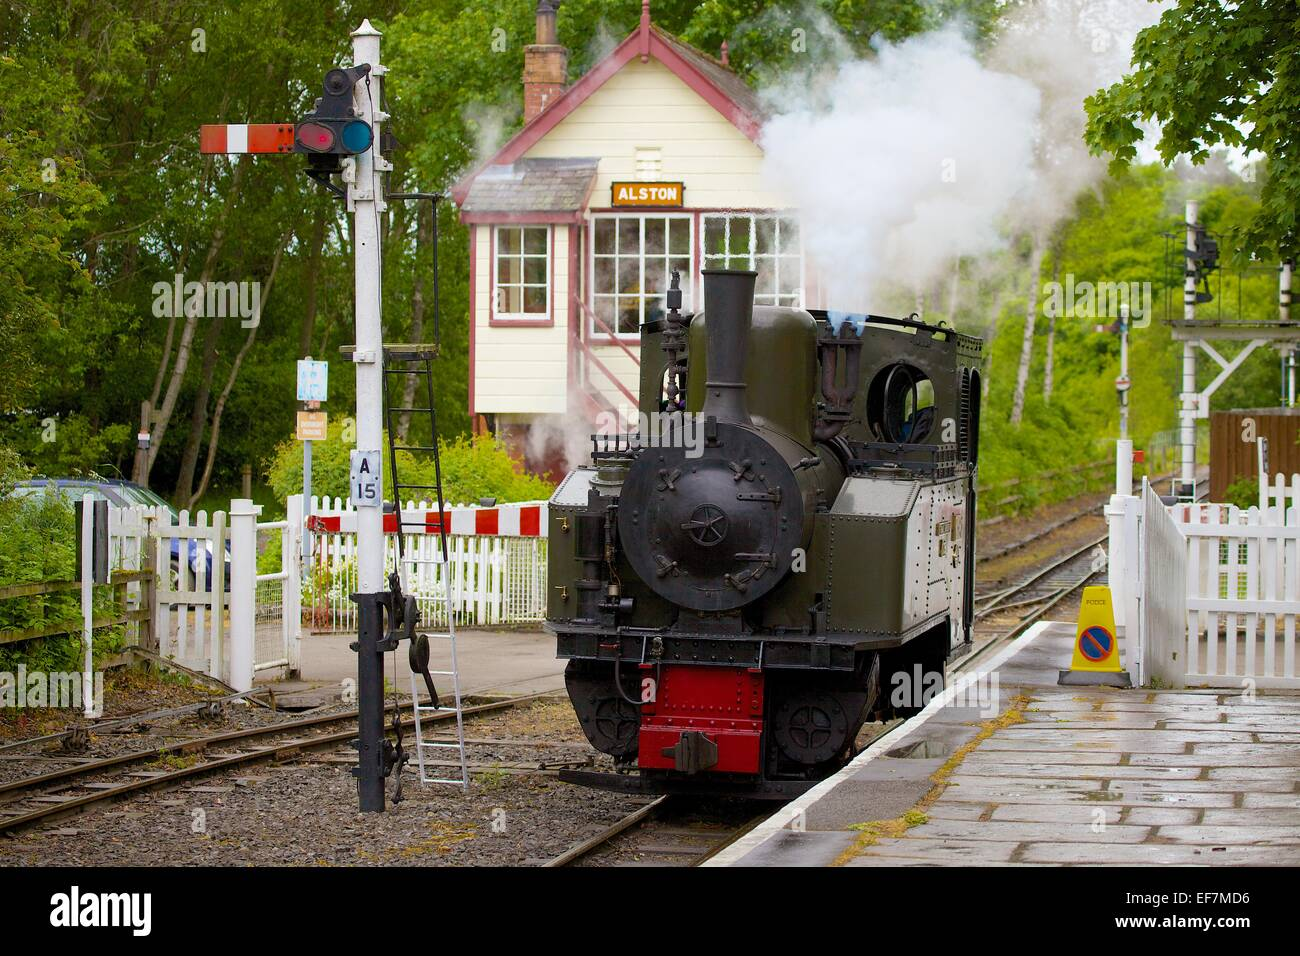 "Steam locomotive ""Thomas Edmondson"" arriving at Alston Station on the South Tynedale Railway, Alston, Cumbria, England, - Stock Image"